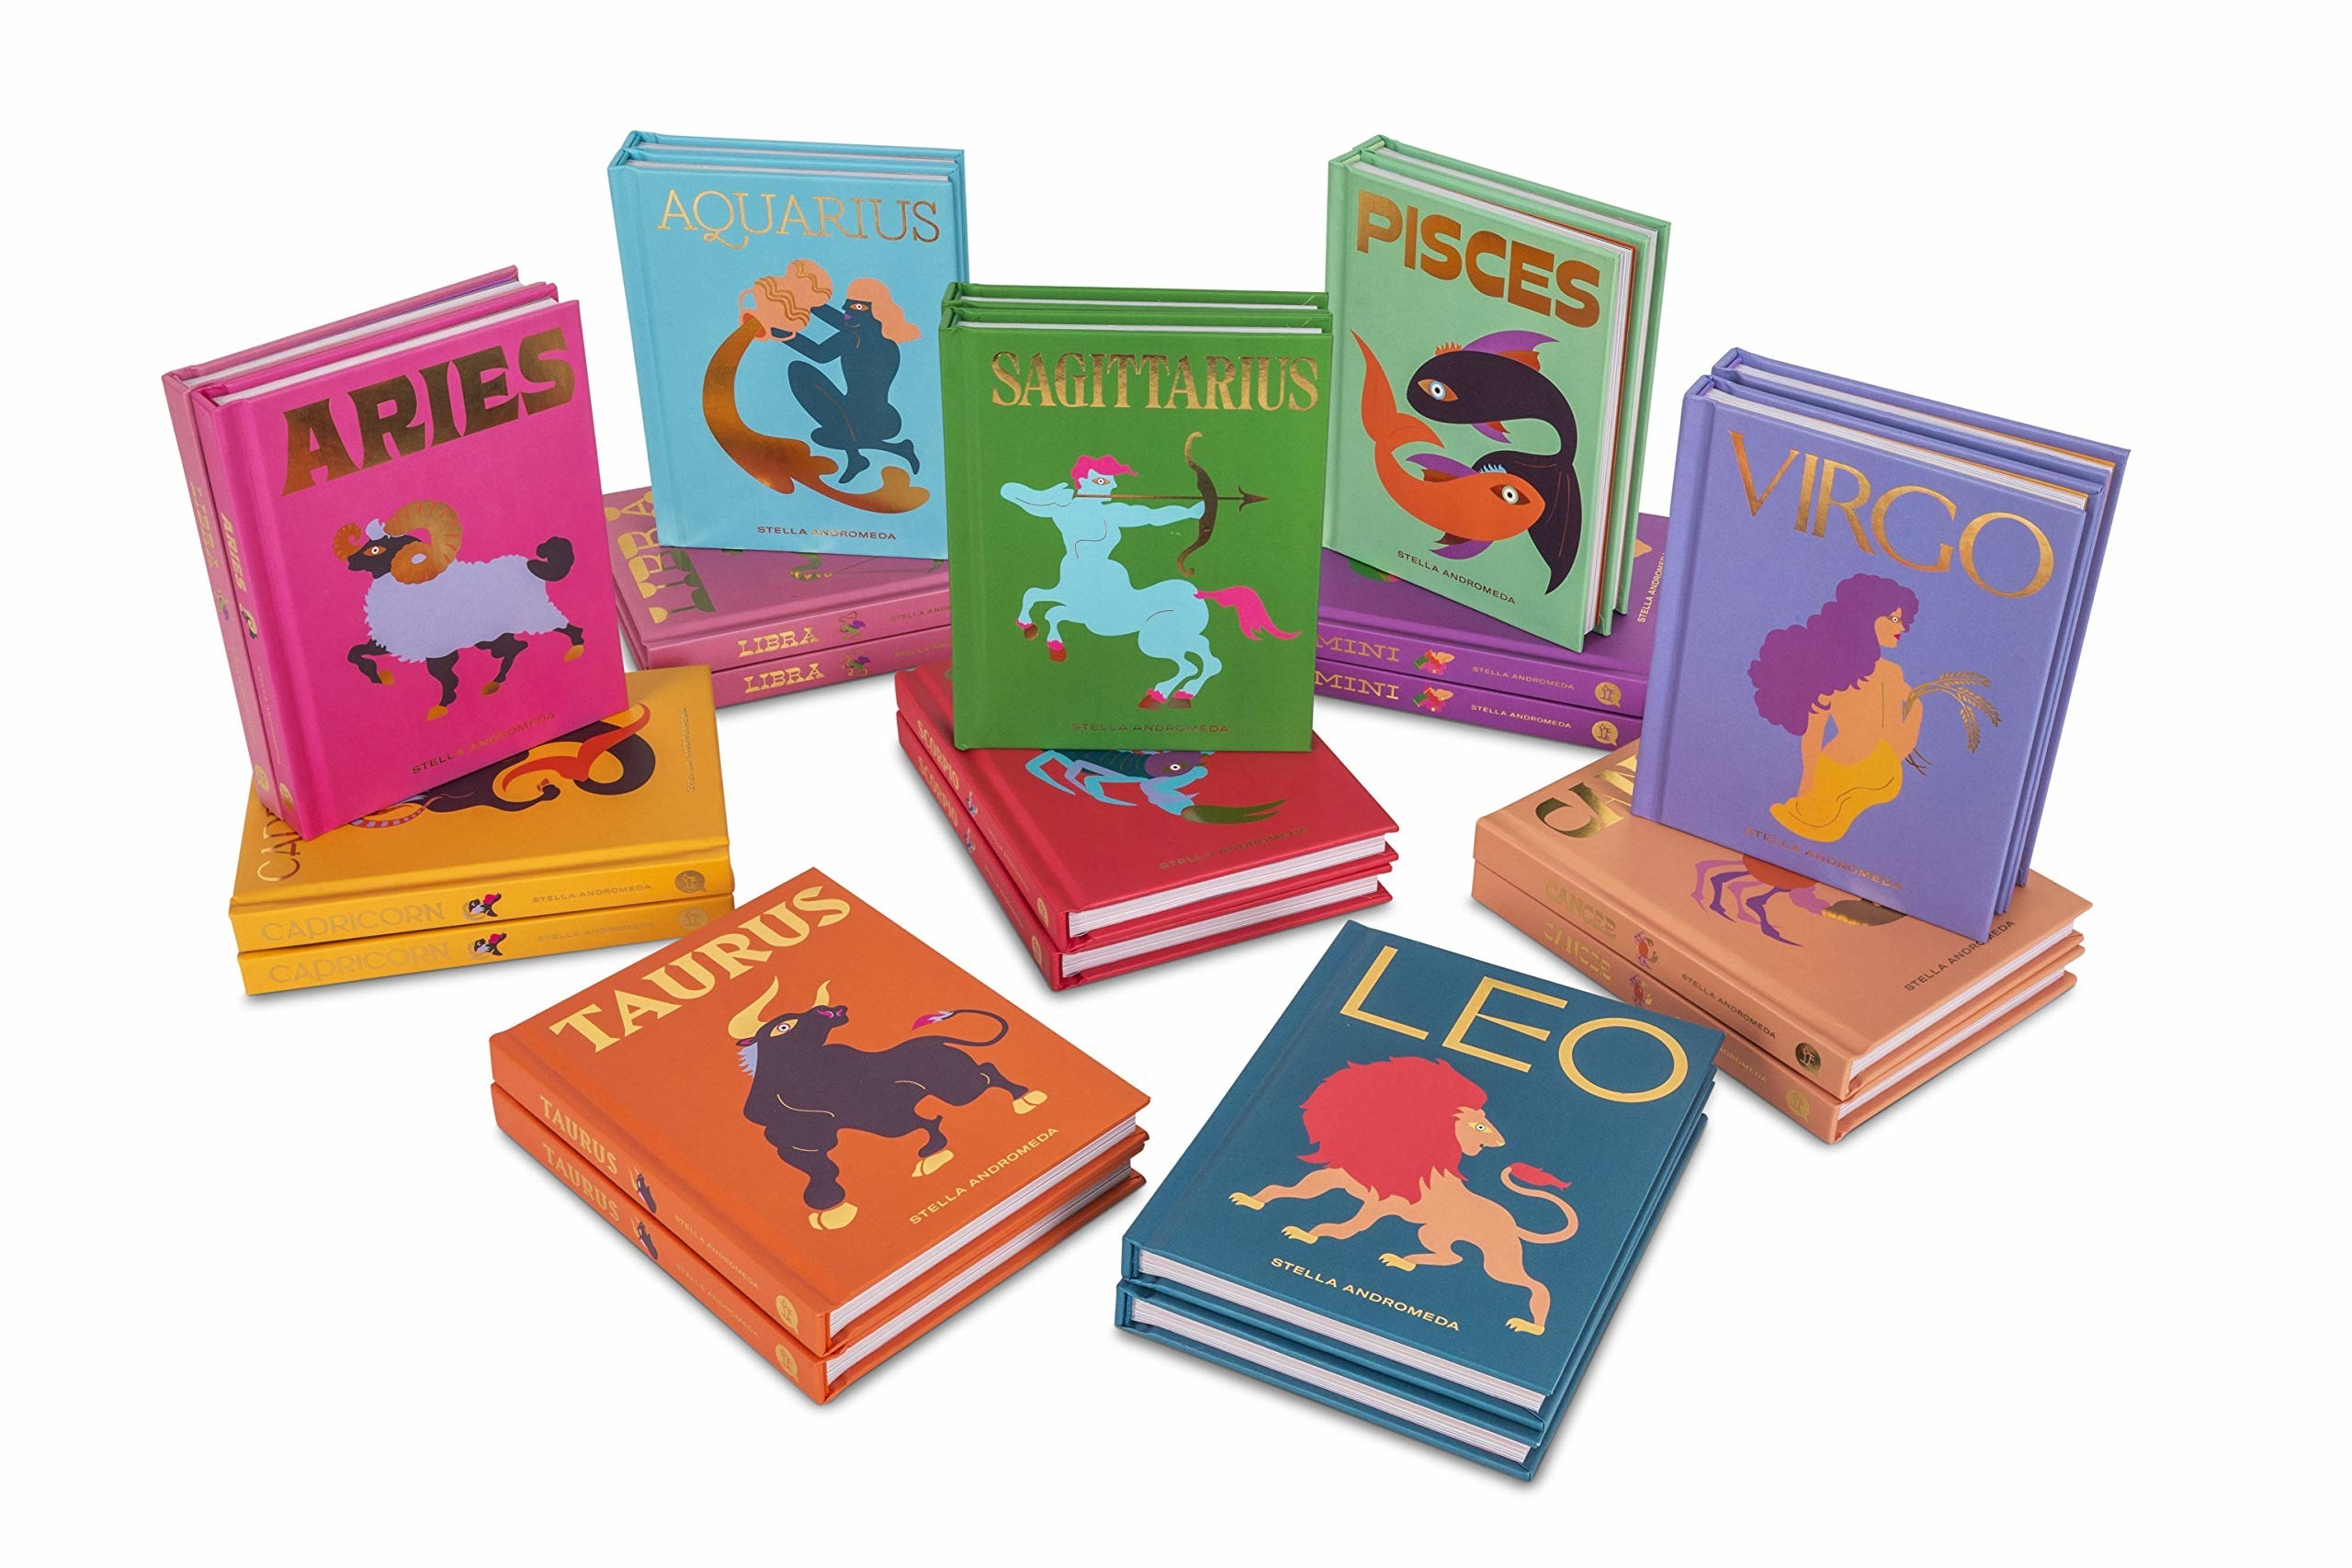 The books, with foil titles of the zodiac signs plus colorful illustration representing the sign, each book in a different color